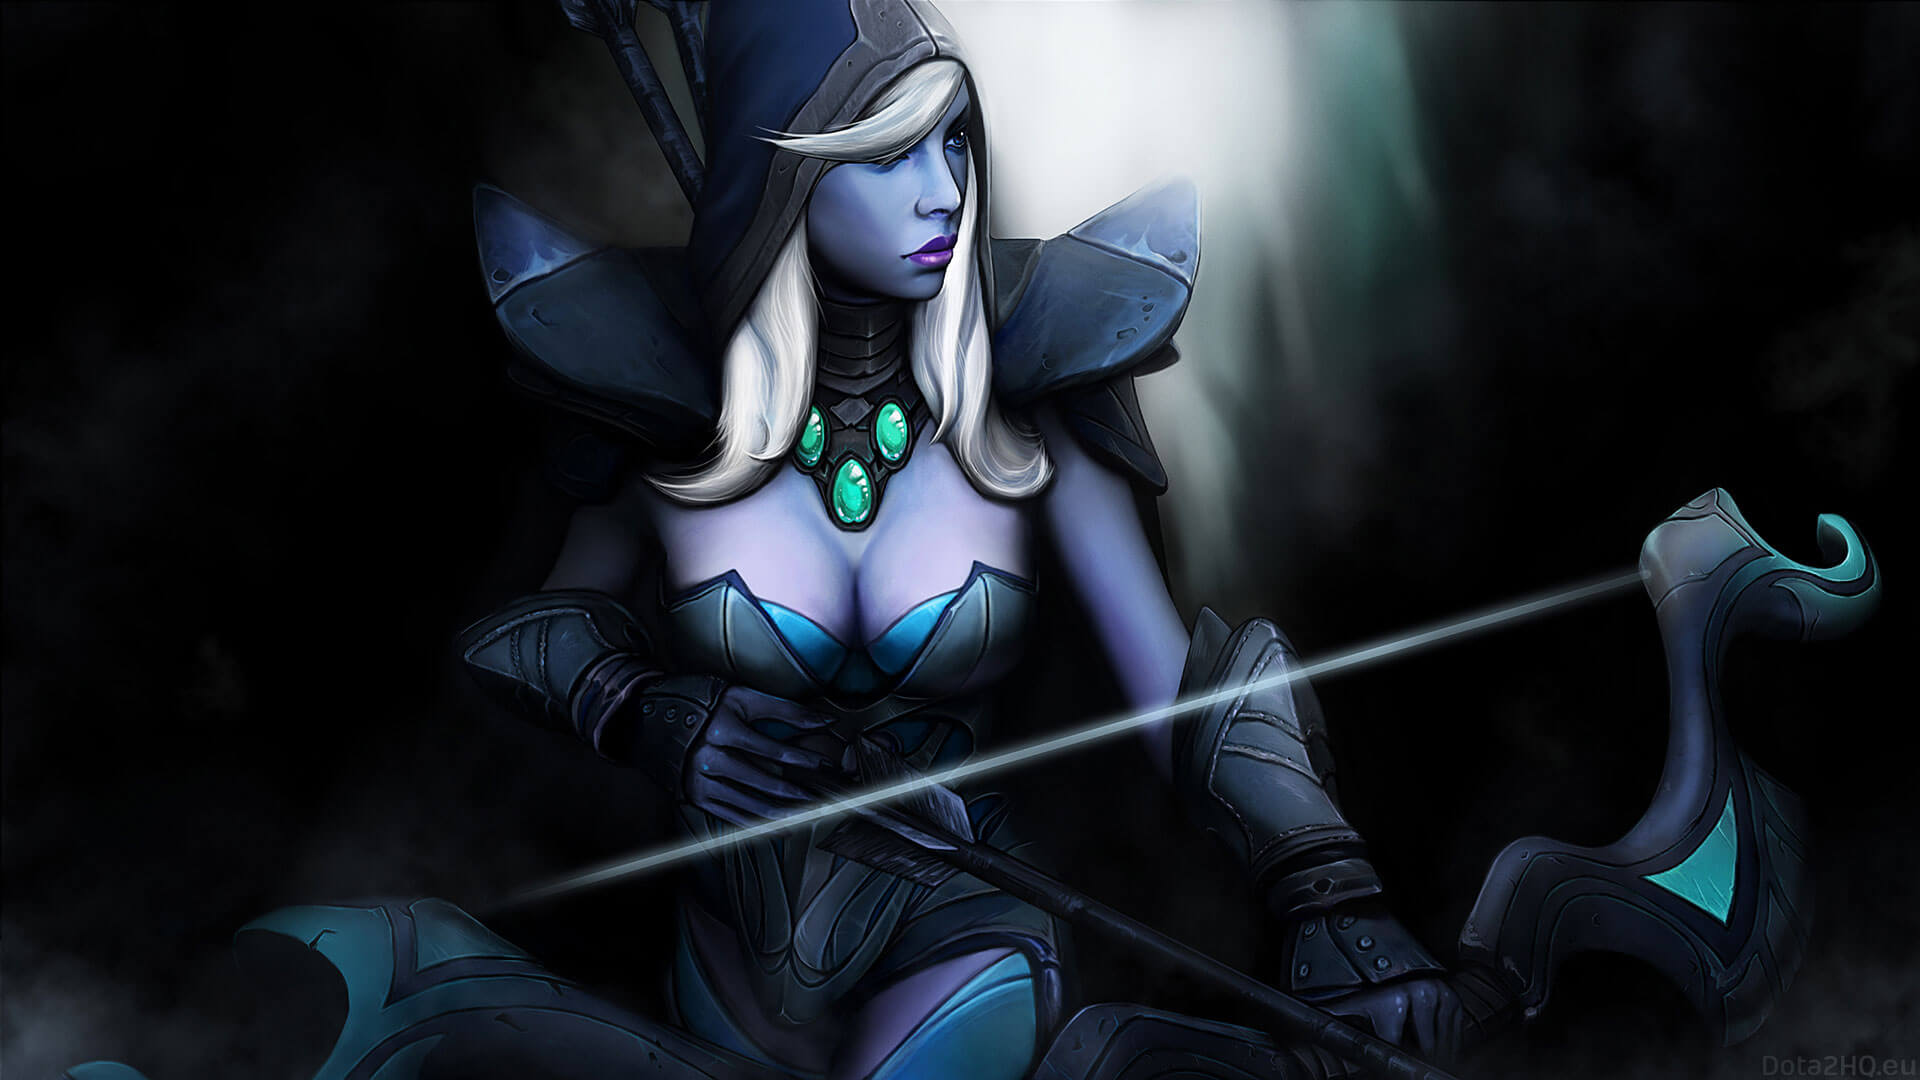 Traxex the Drow Ranger cleavage pic